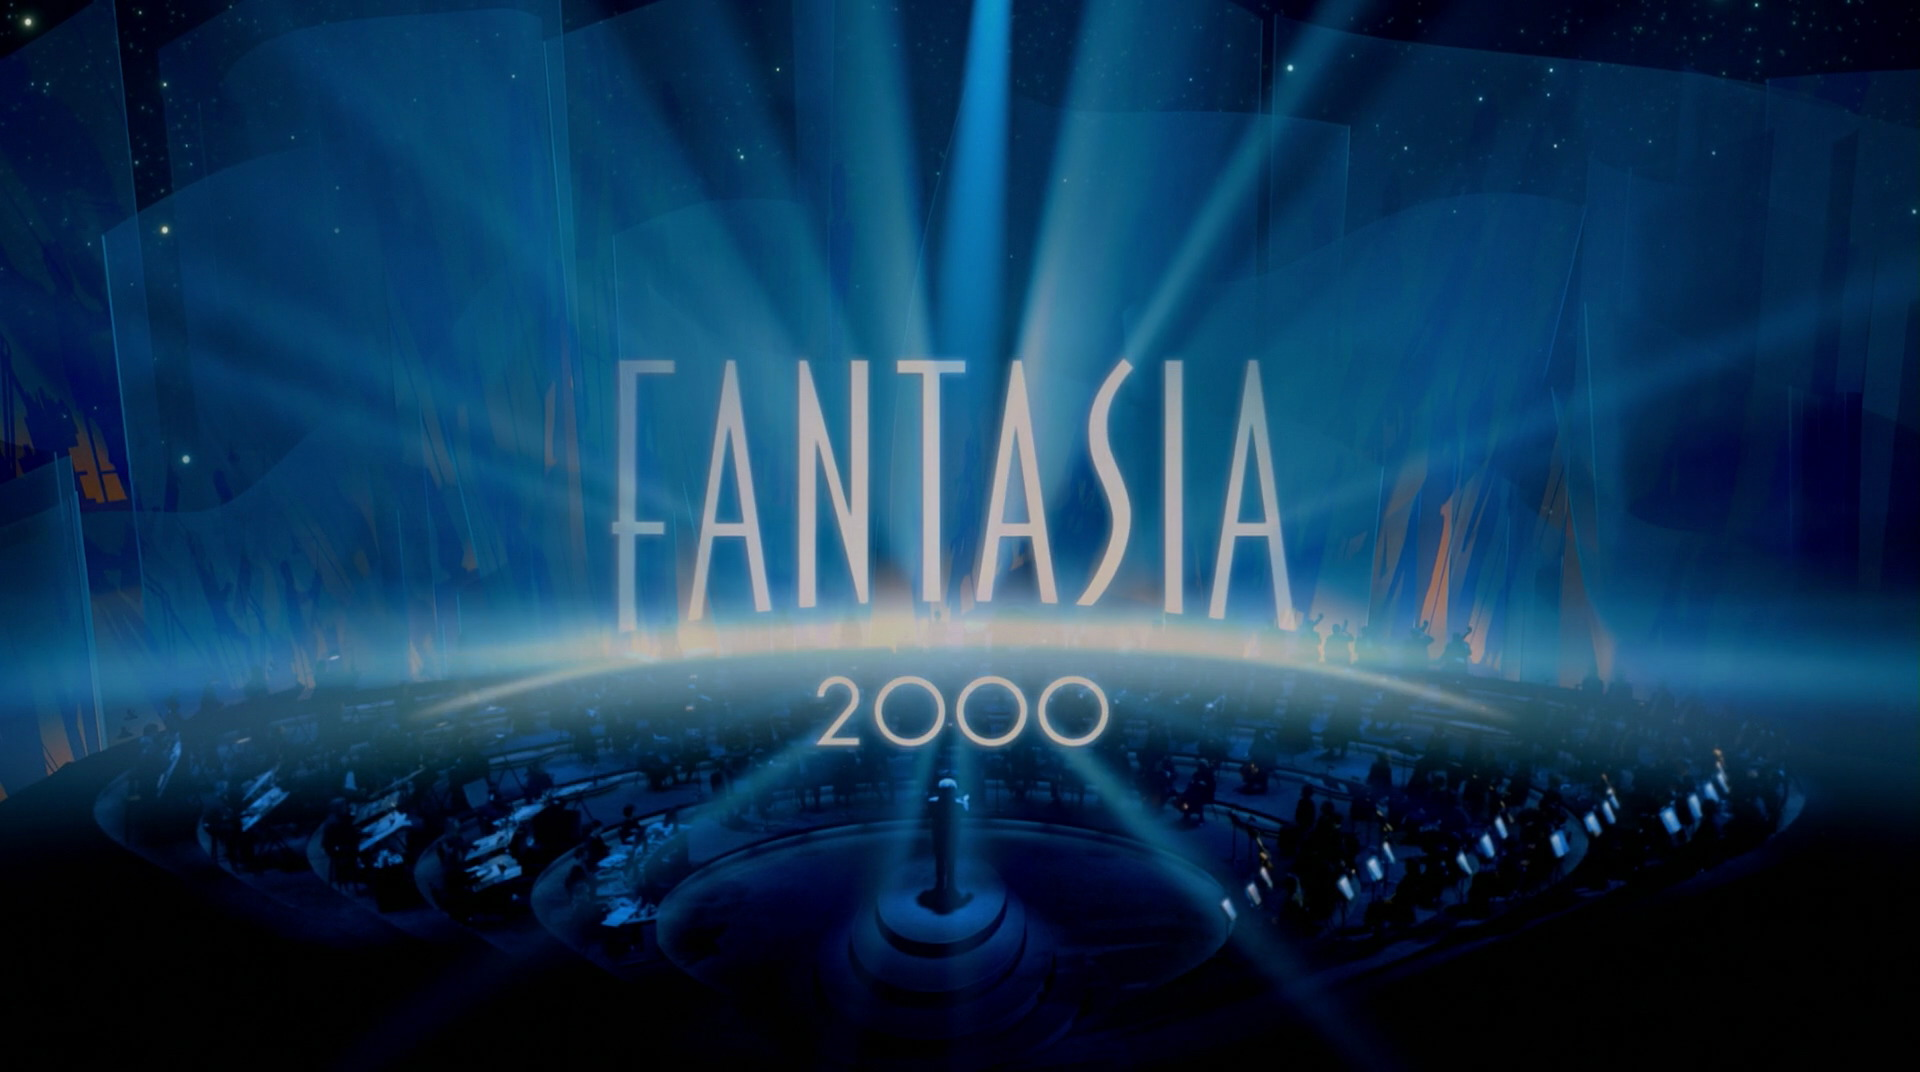 essay on disneys fantasia 2000 Fantasia 2000 is the 38th film in the official disney classic animated film list ignore any trepidations you might have about the movie.